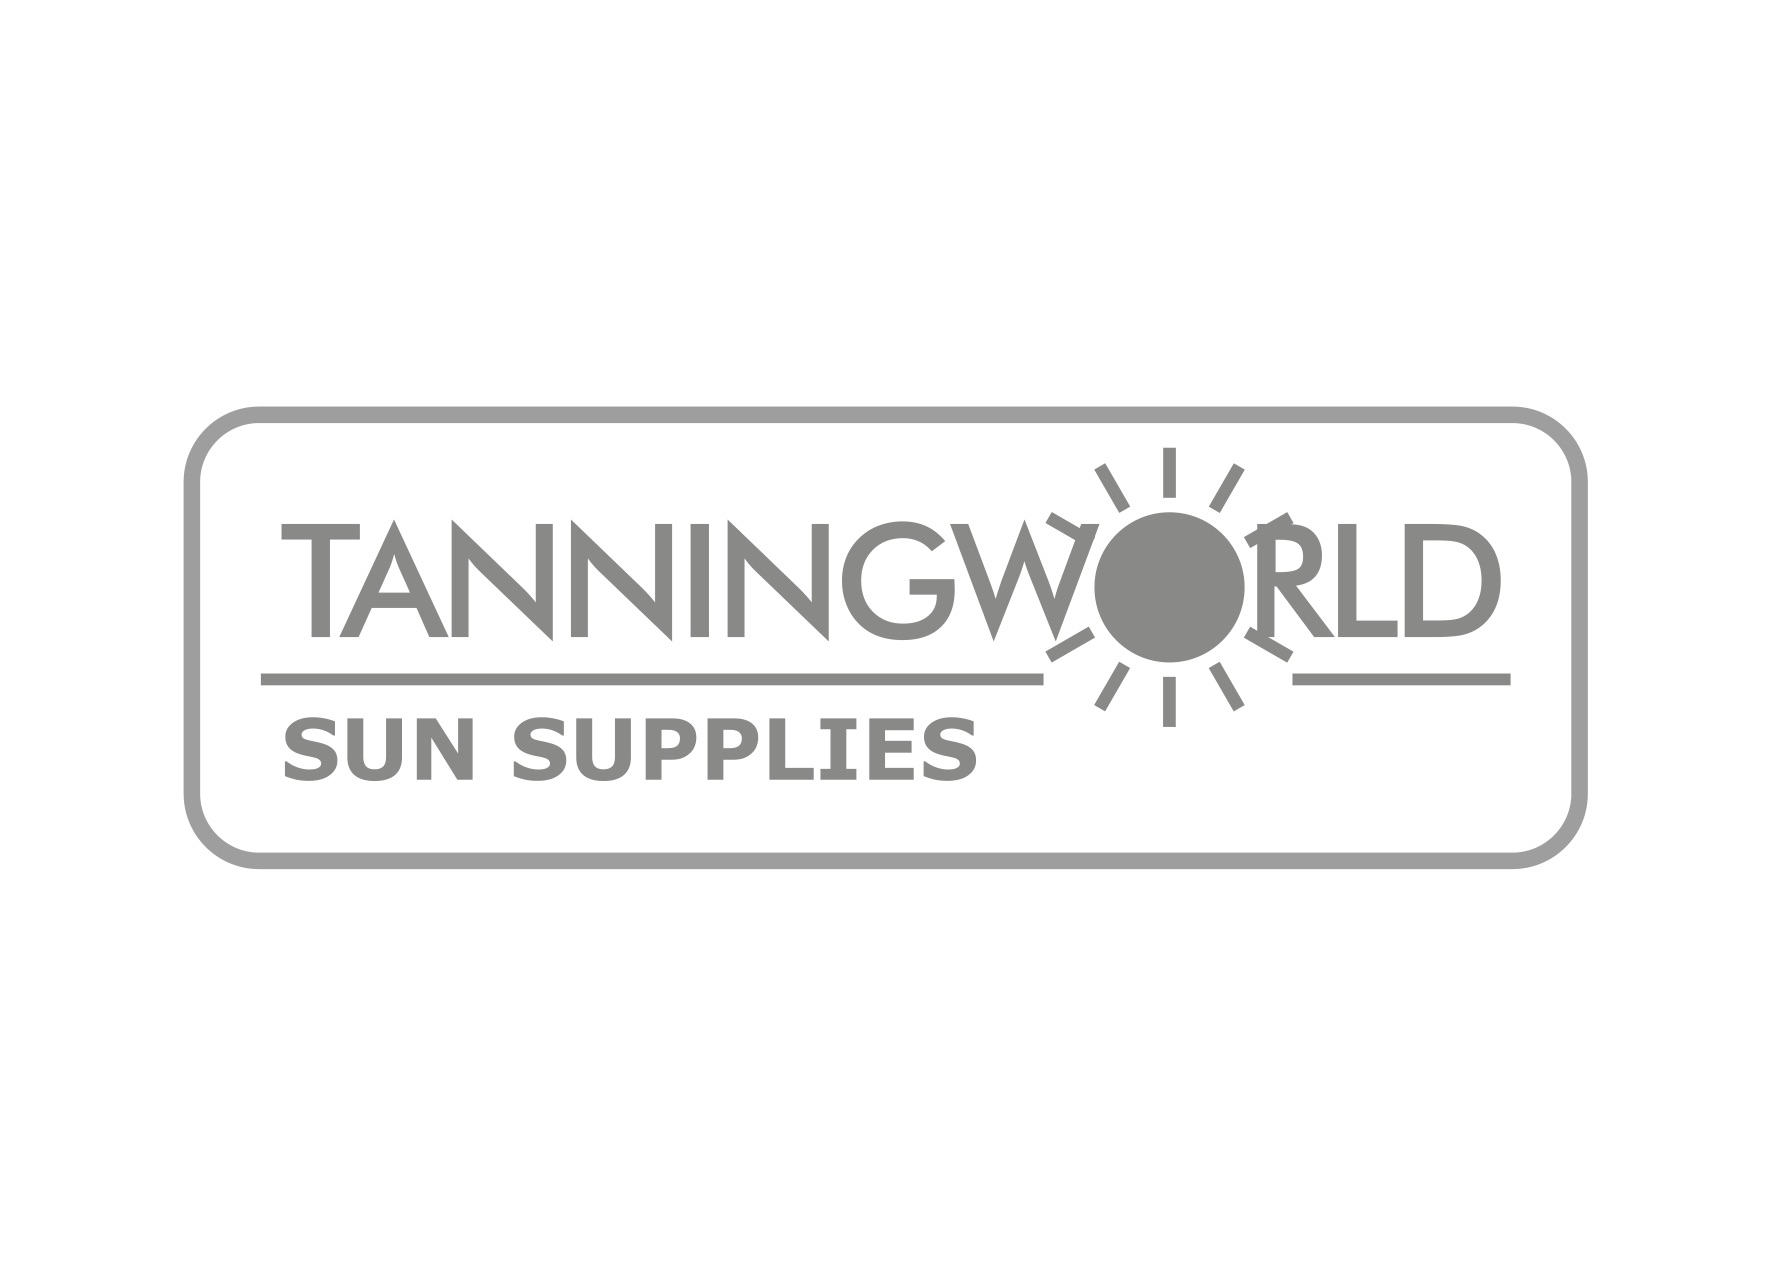 Tanningworld Sun Supplies